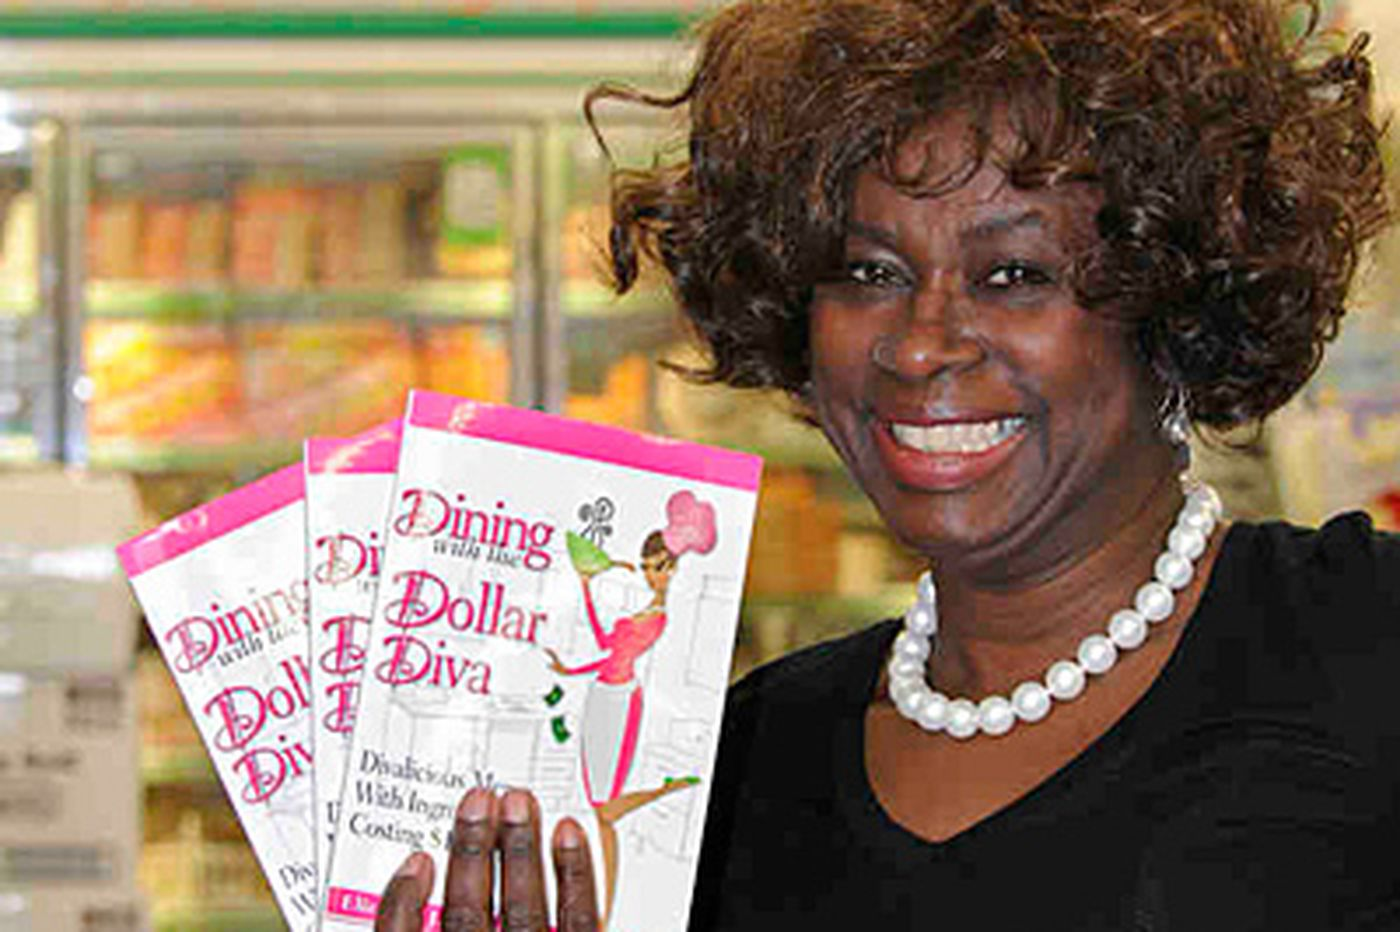 """Annette John-Hall: A timely book on eating cheaply and healthily from Philadelphia's """"Dollar Diva"""""""